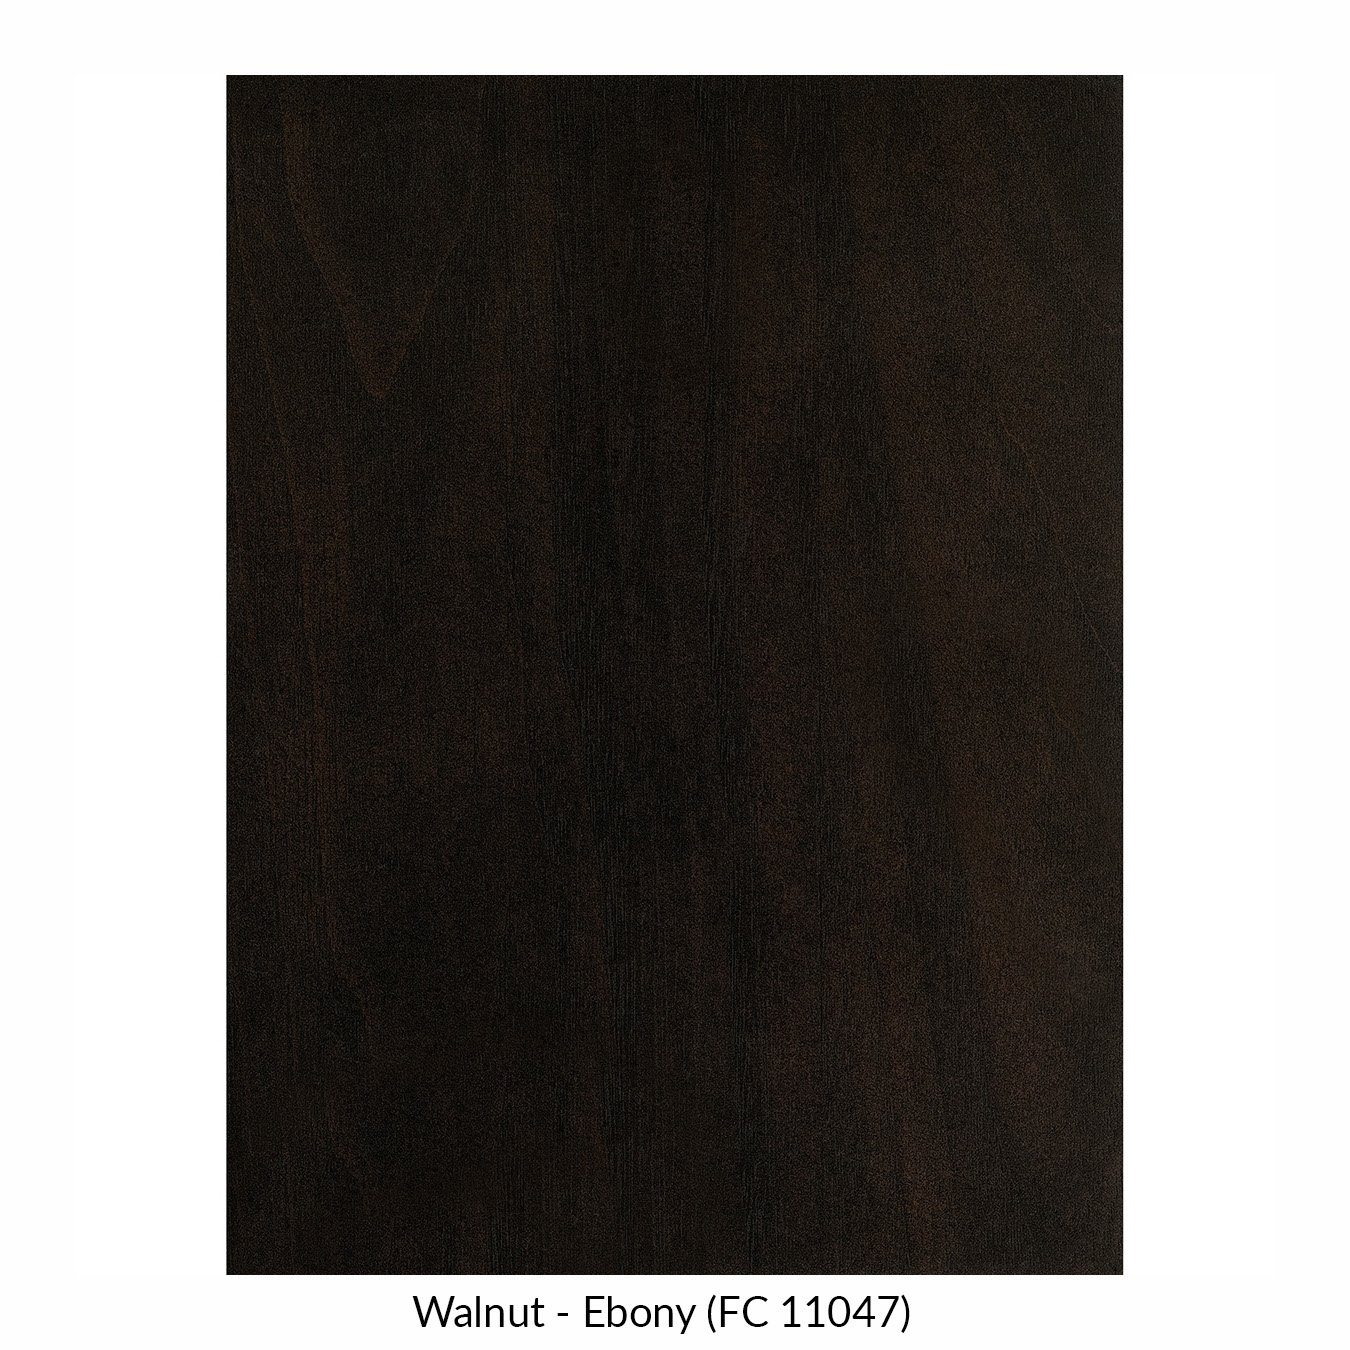 spectrum-walnut-ebony-fc-11047.jpg